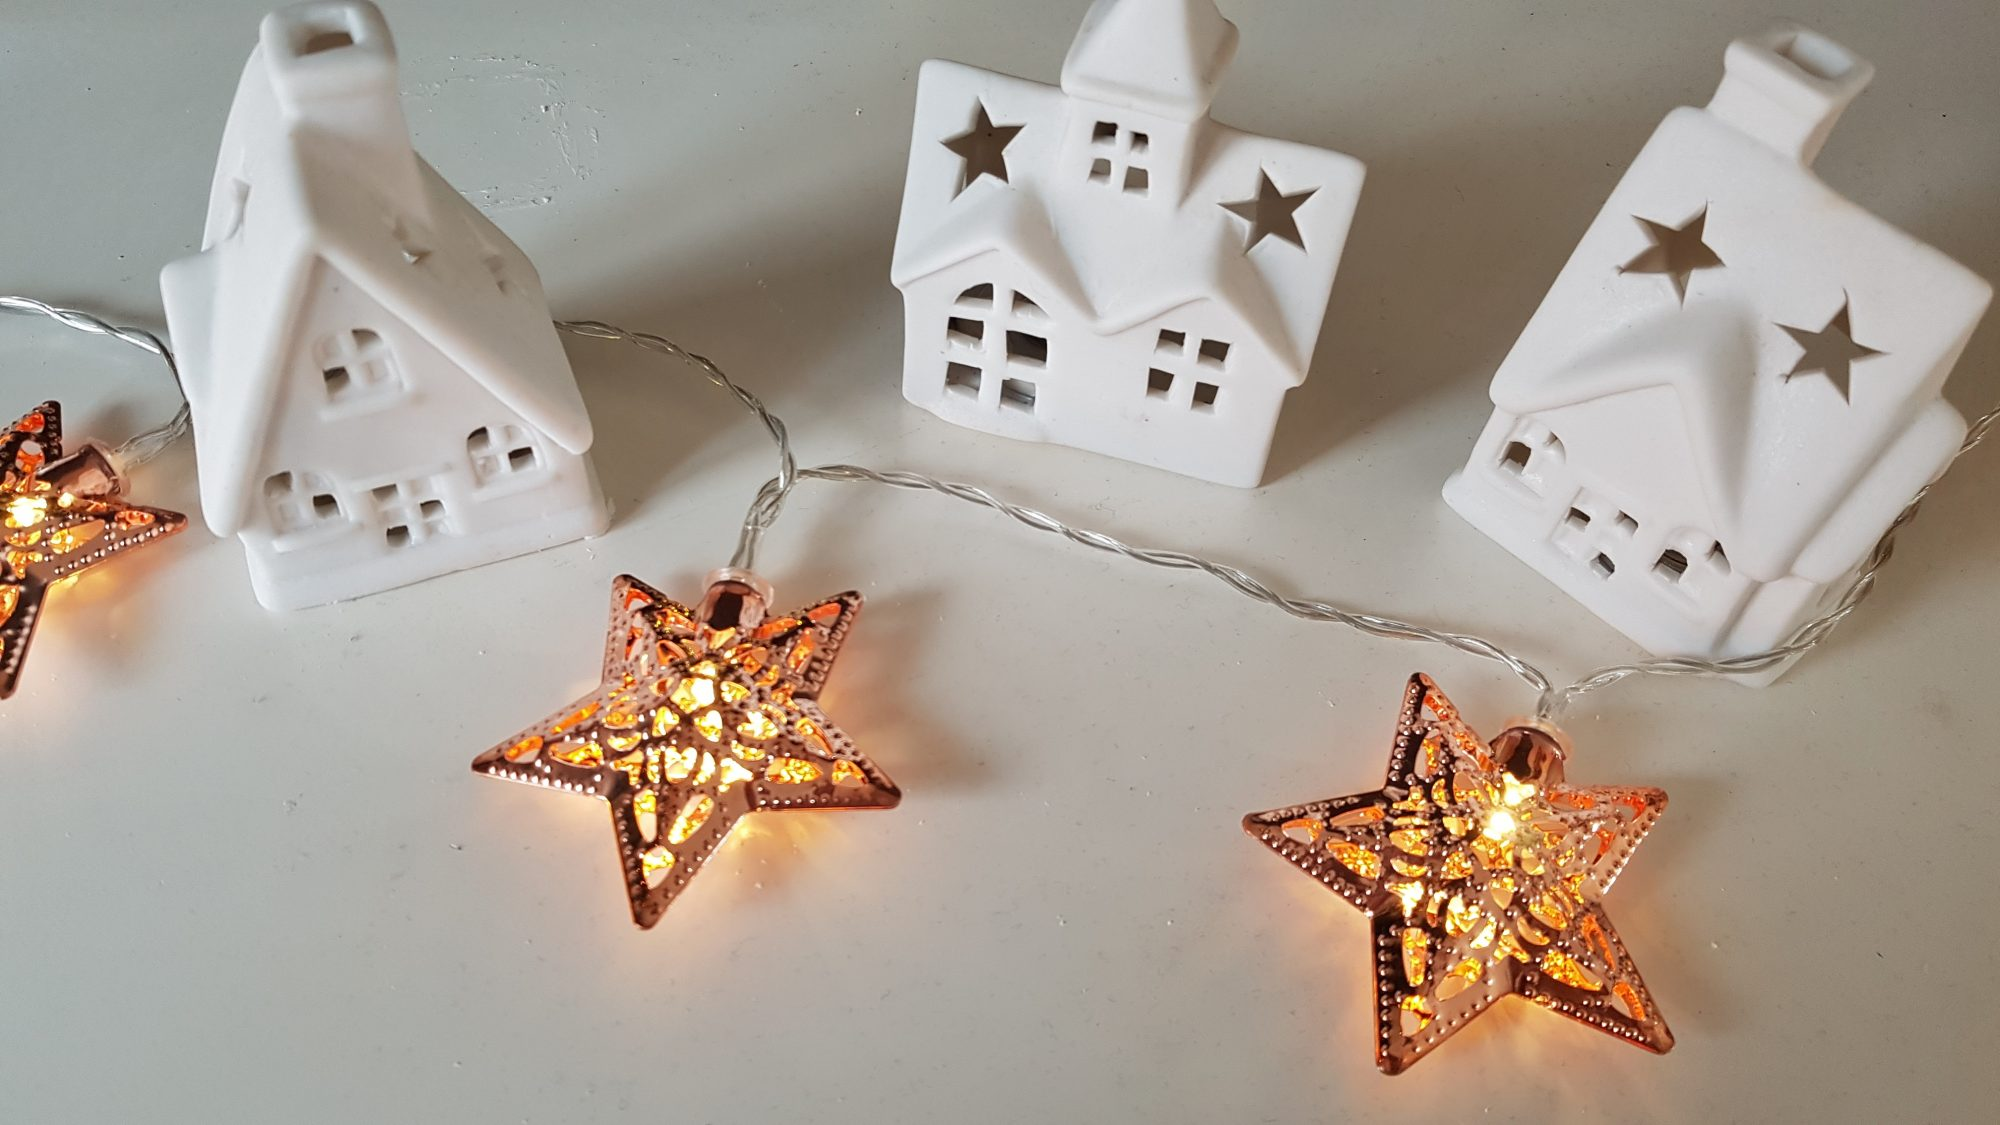 Getting Our Home Christmas Ready with Dobbies